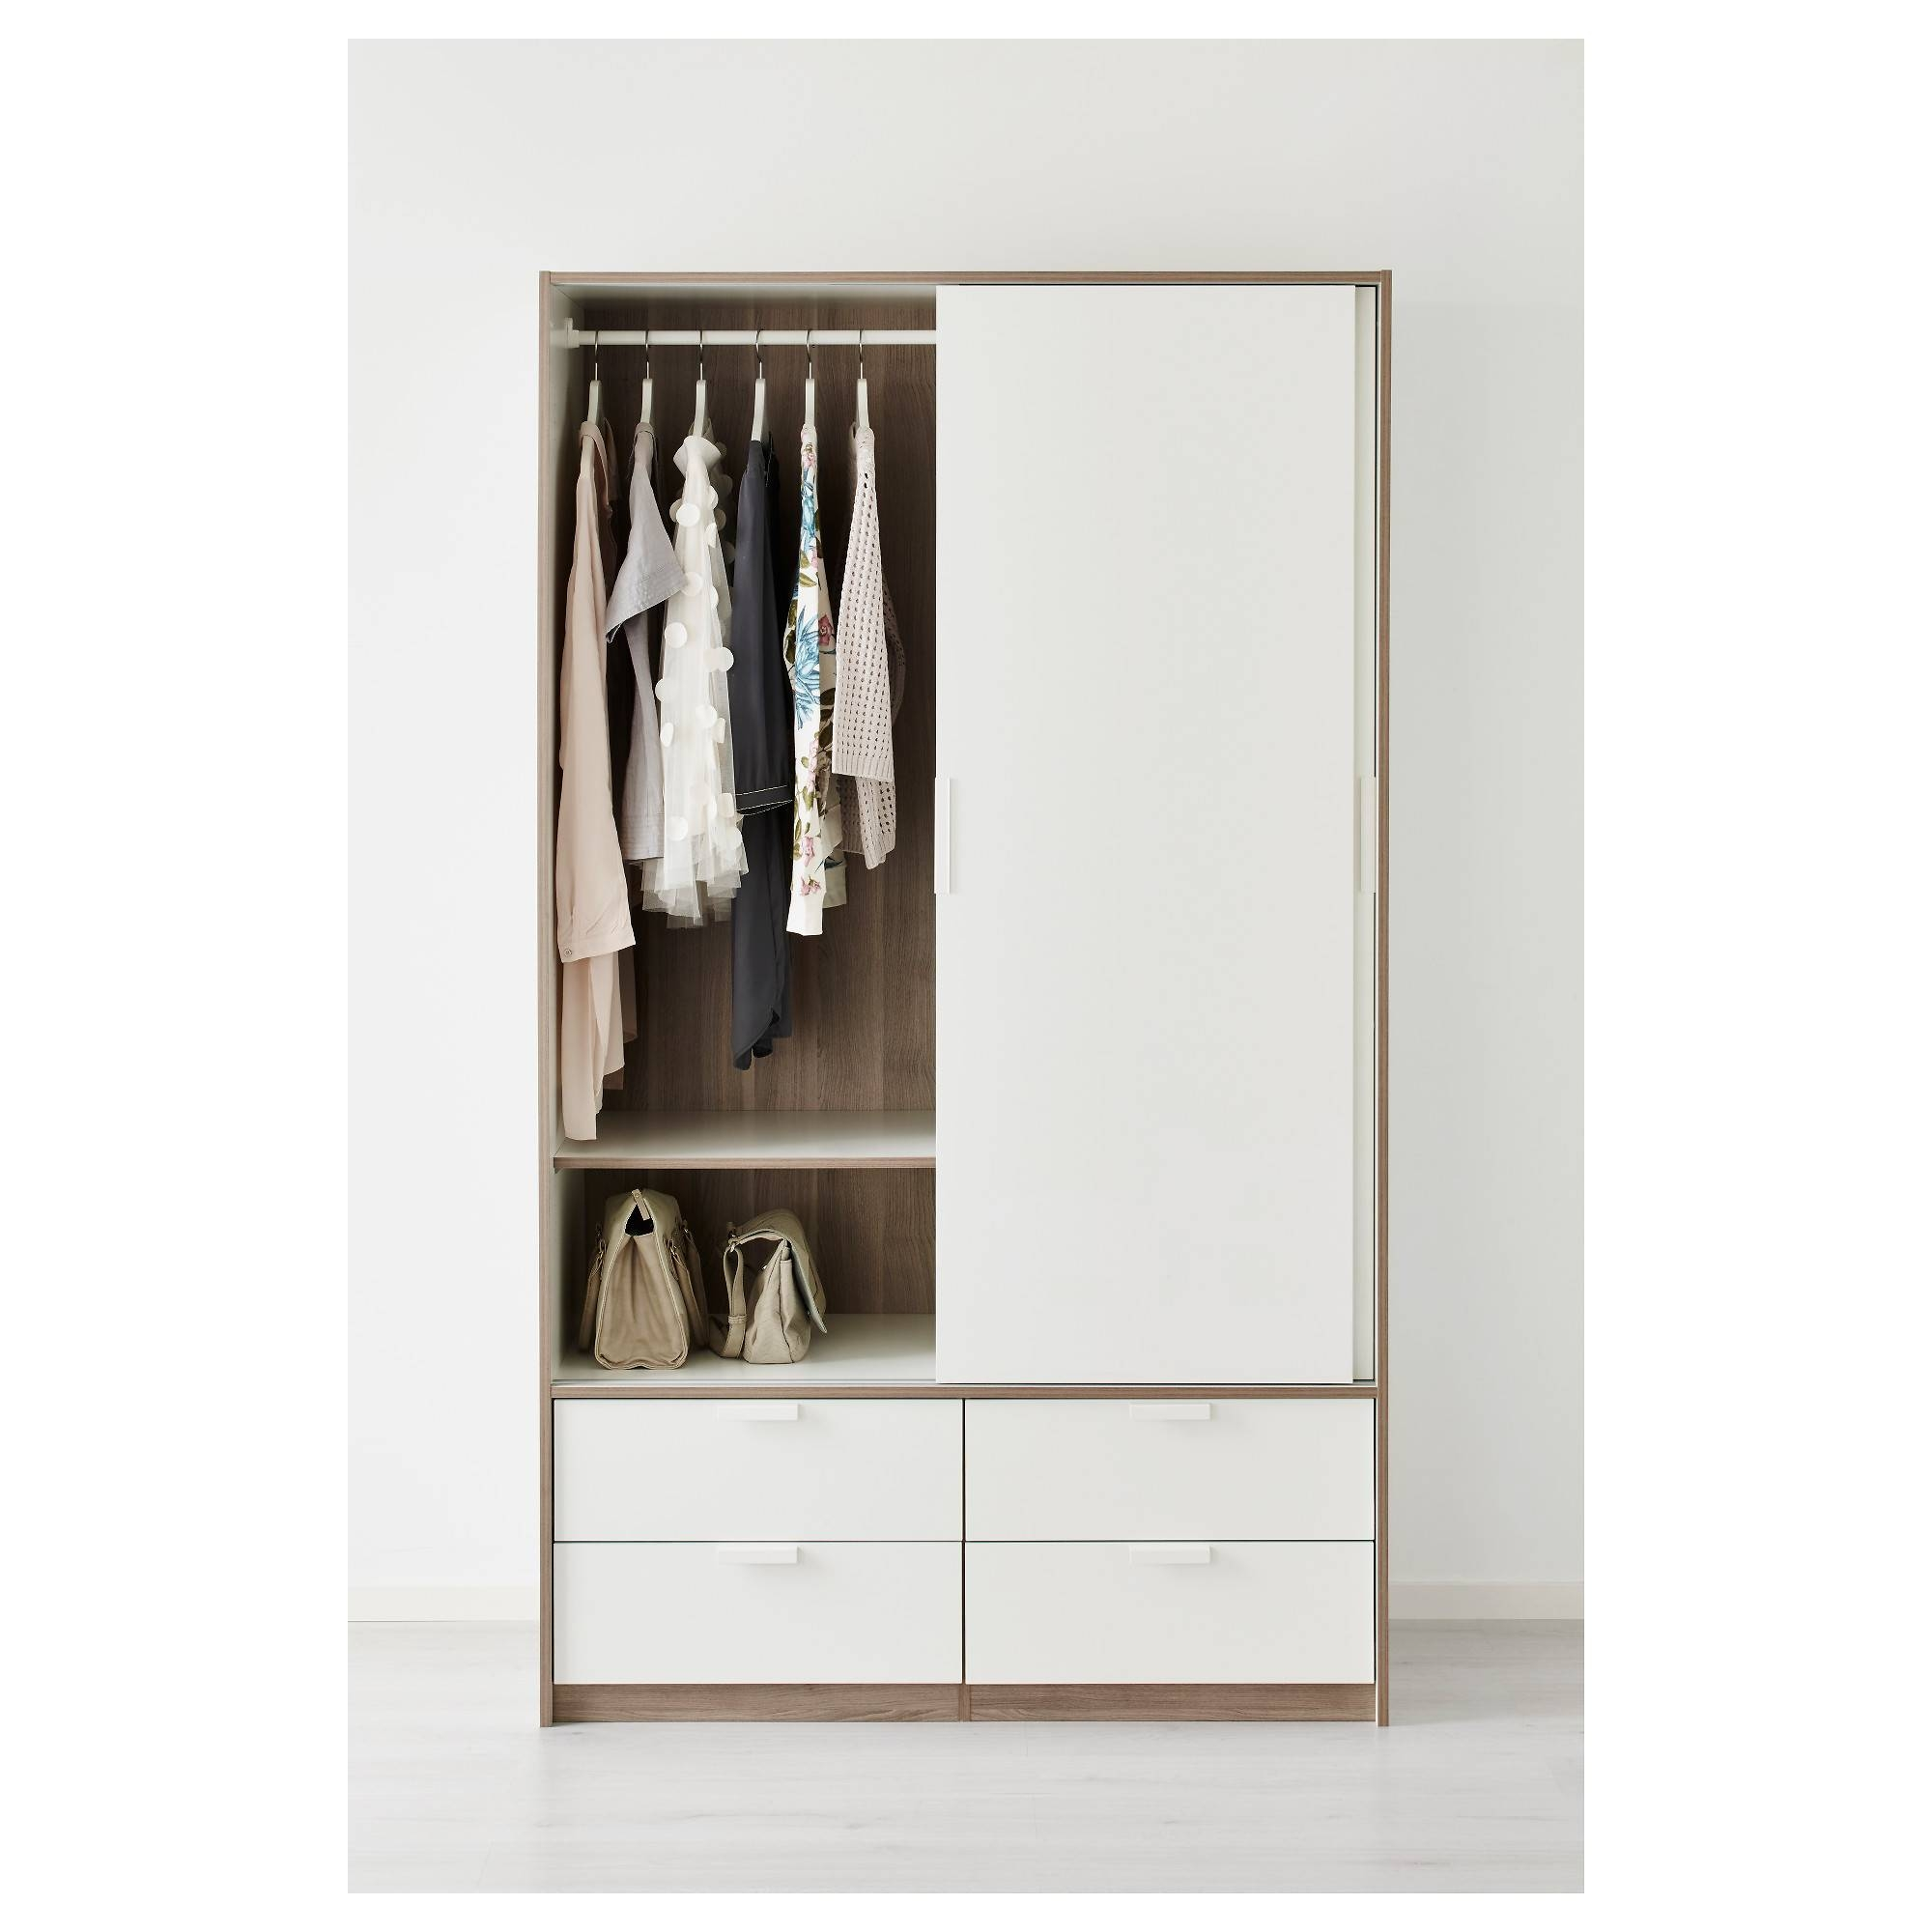 Trysil Wardrobe W Sliding Doors/4 Drawers White 118X61X202 Cm - Ikea for White Wardrobes With Drawers (Image 10 of 15)